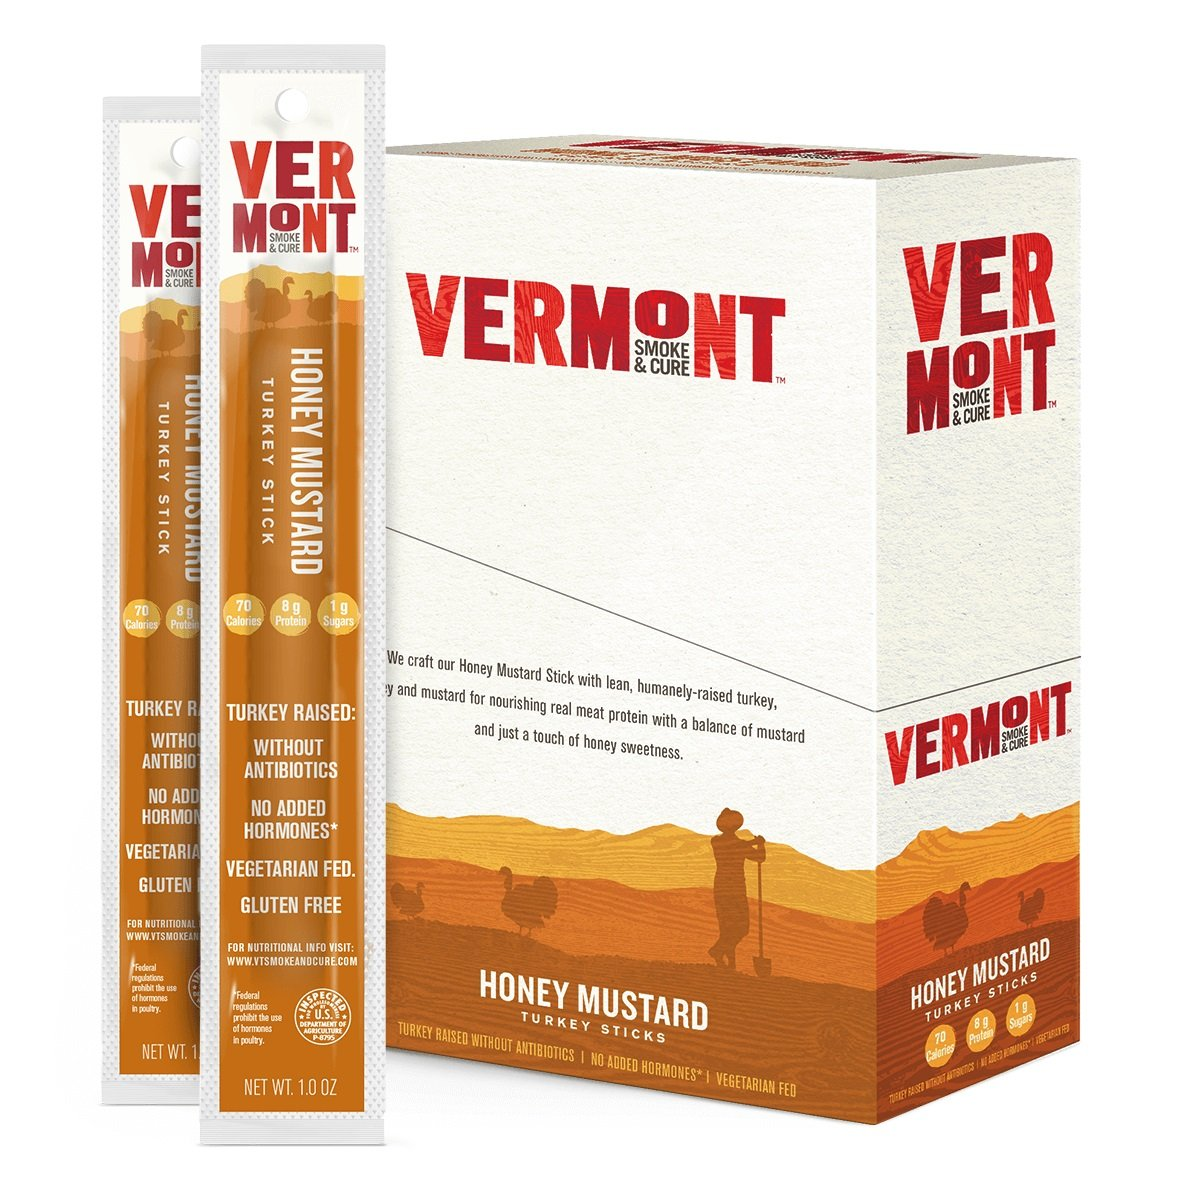 Vermont Smoke & Cure Meat Sticks, Turkey, Antibiotic Free, Gluten Free, Honey Mustard, 1oz Stick, 24 Count